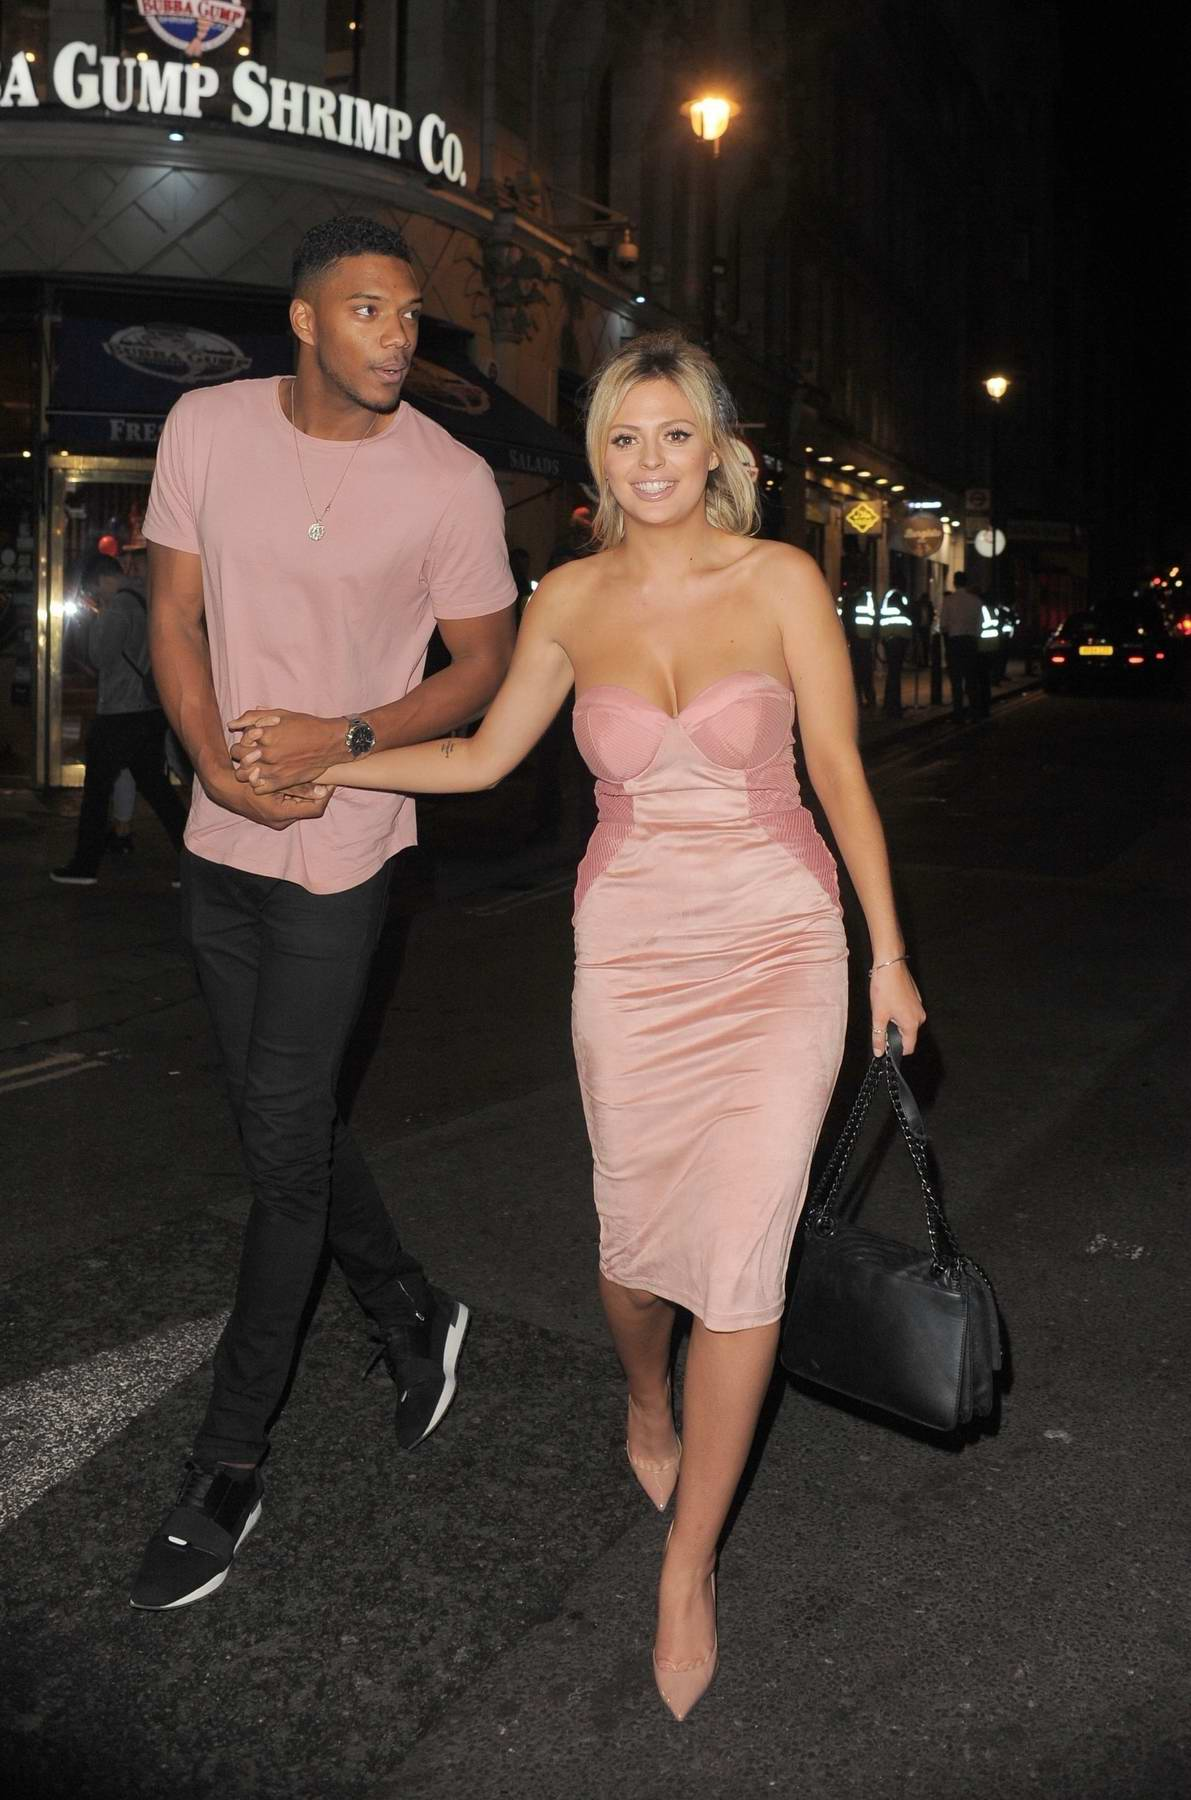 Danielle Sellers and Theo Campbell spotted together leaving DSTRKT nightclub in London